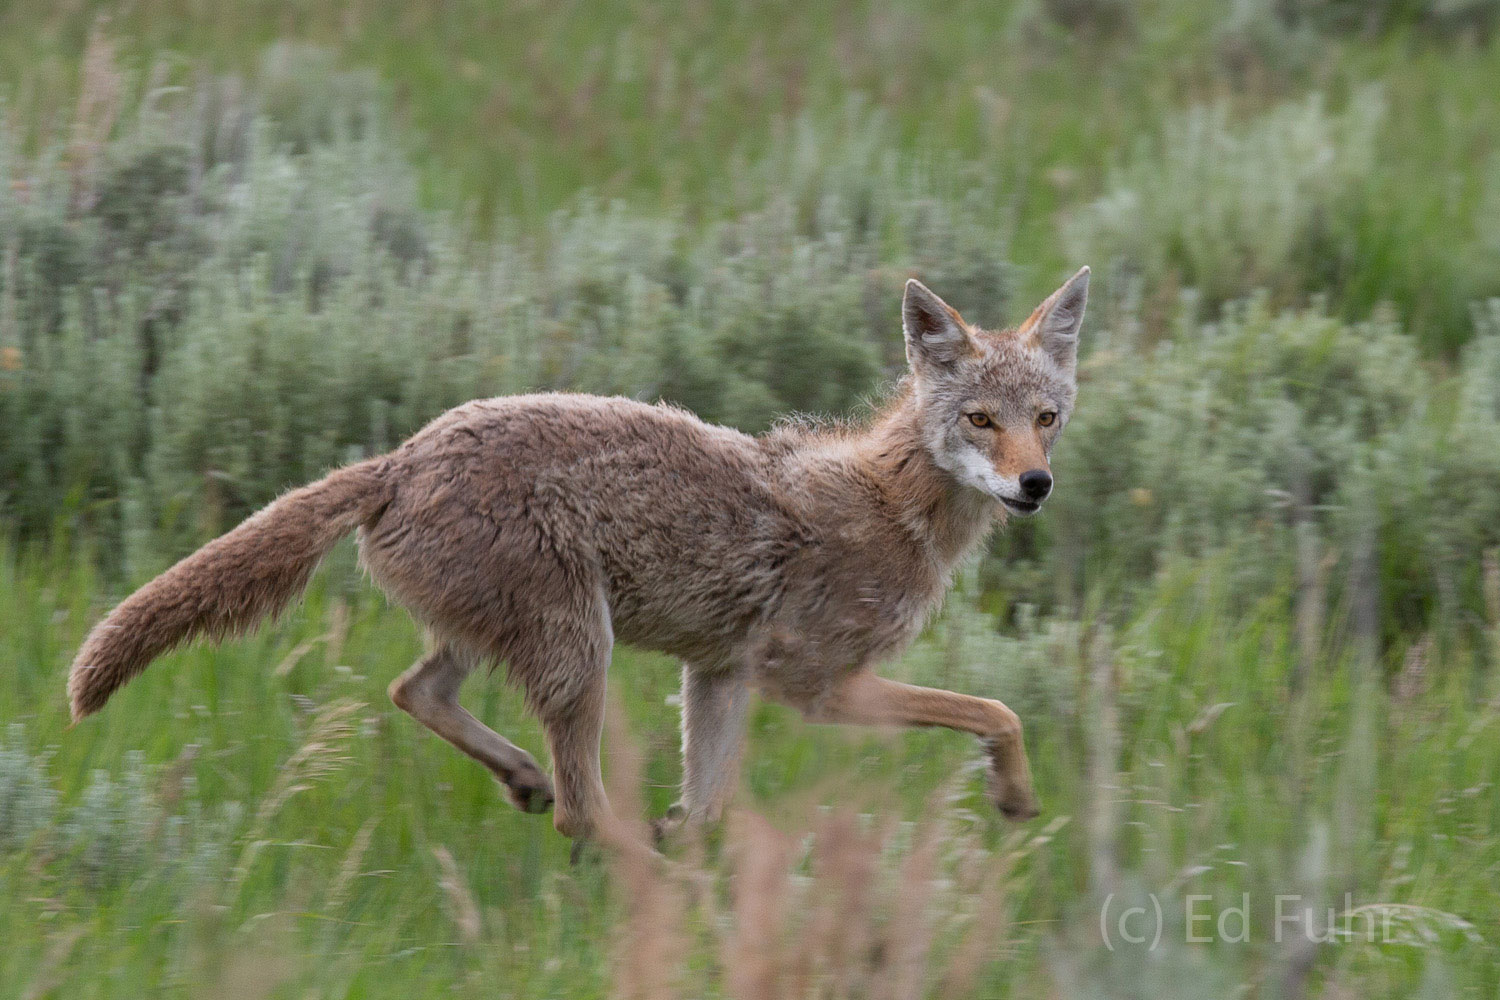 grand teton national park, coyote photograph, image, 2013, Tetons, Grand Teton, photo